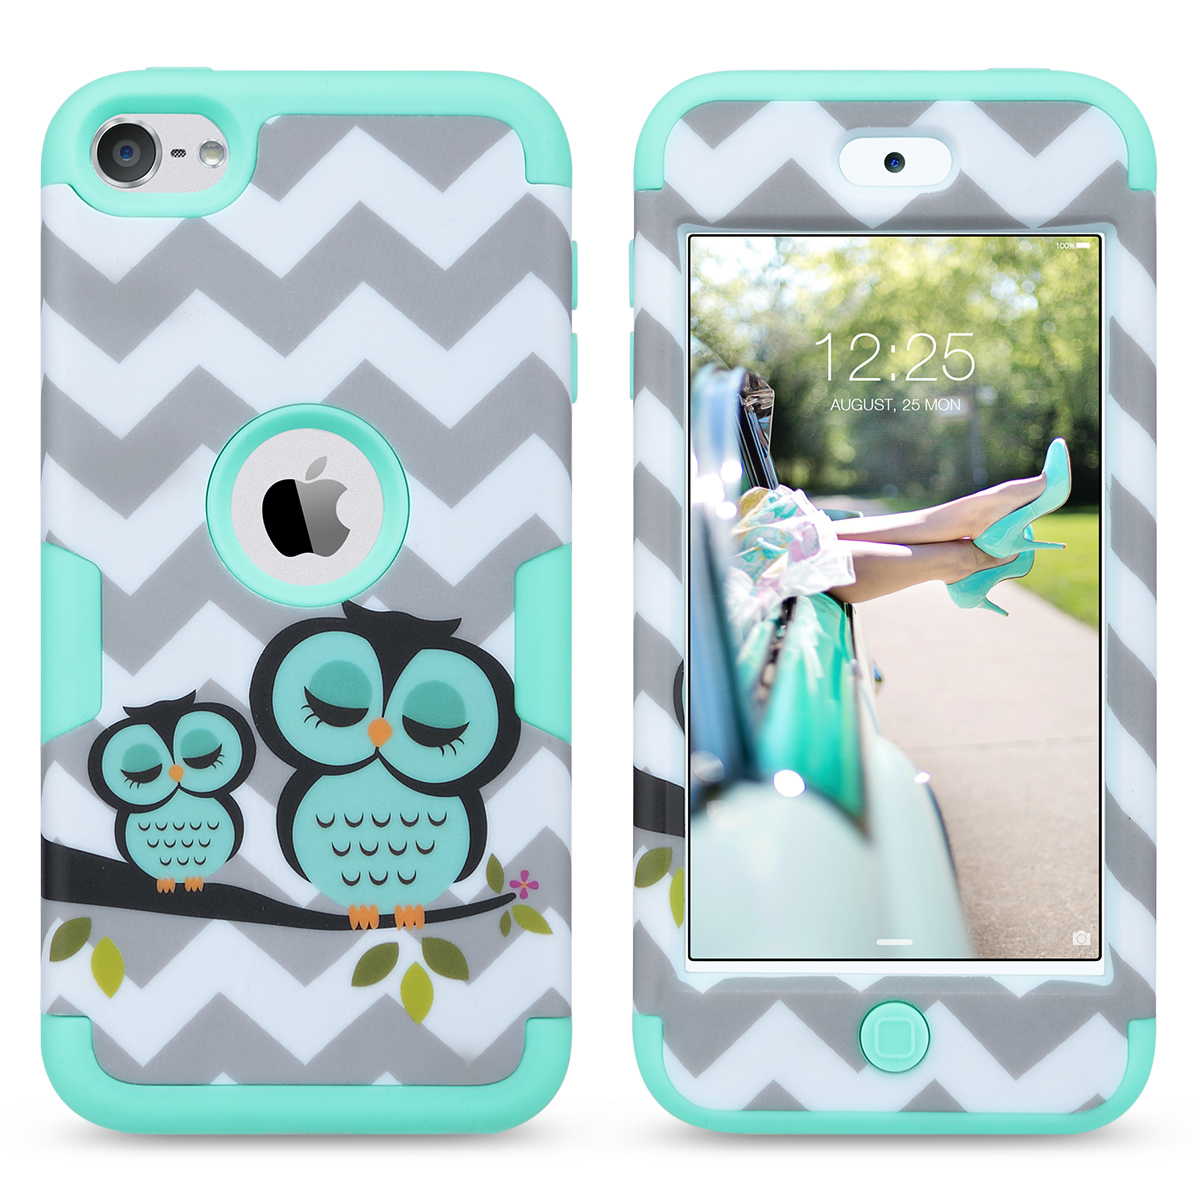 Hybrid-Hard-Protective-Silicon-TPU-Case-for-Apple-iPod-Touch-5-6th-Generation thumbnail 59